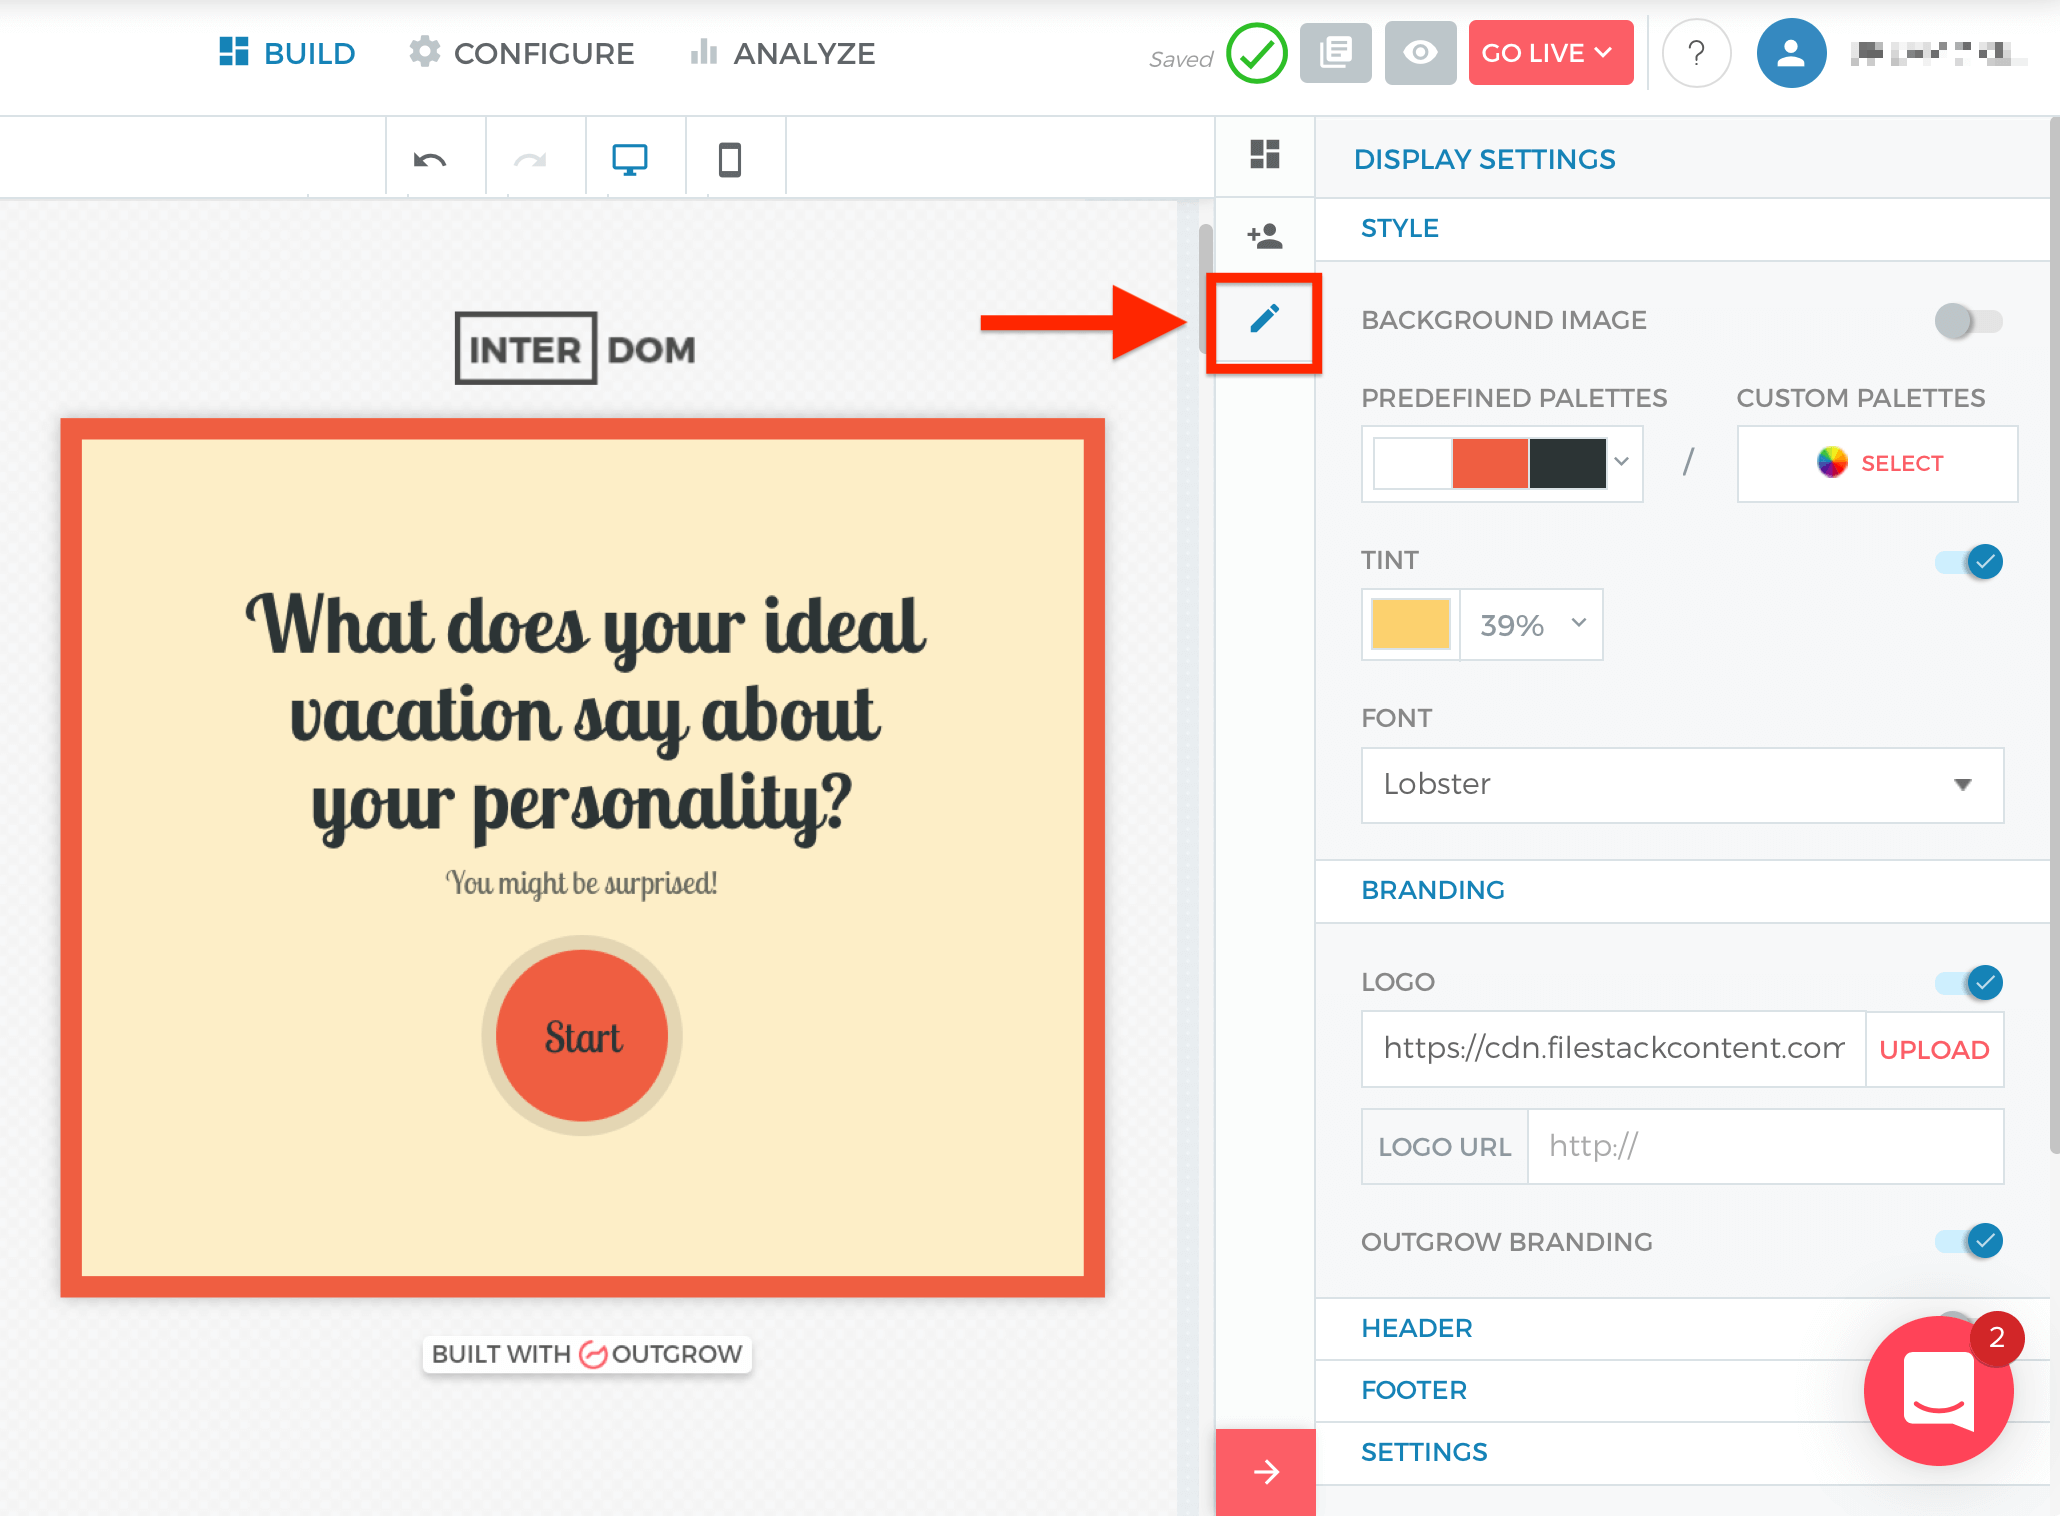 Outgrow quiz color and background image settings.